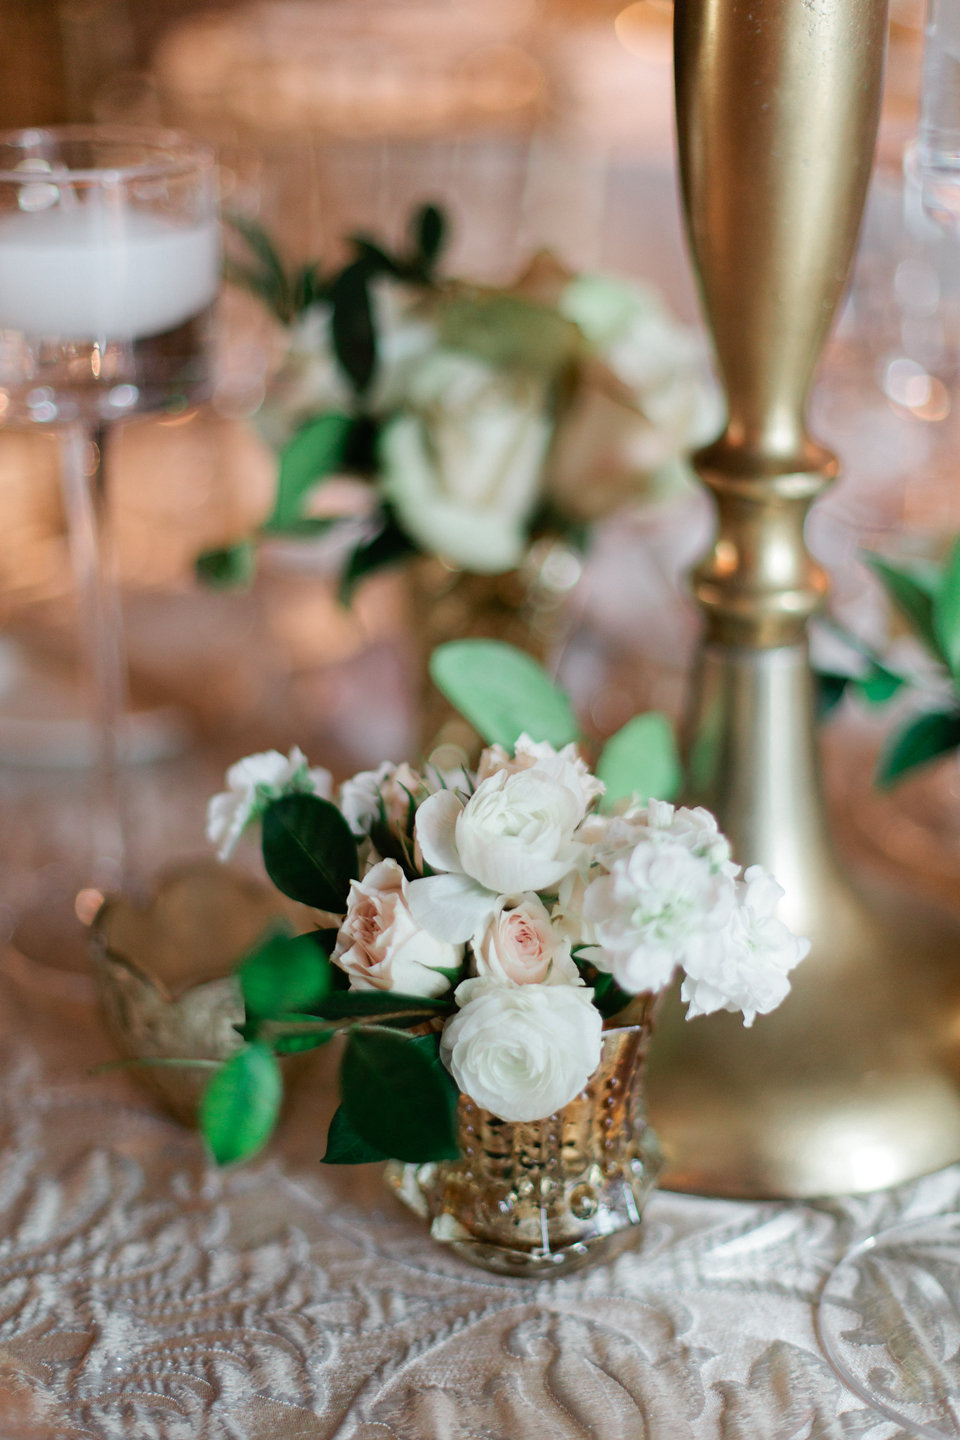 Blush spray roses with ivory ranunculus buds at luxury wedding reception